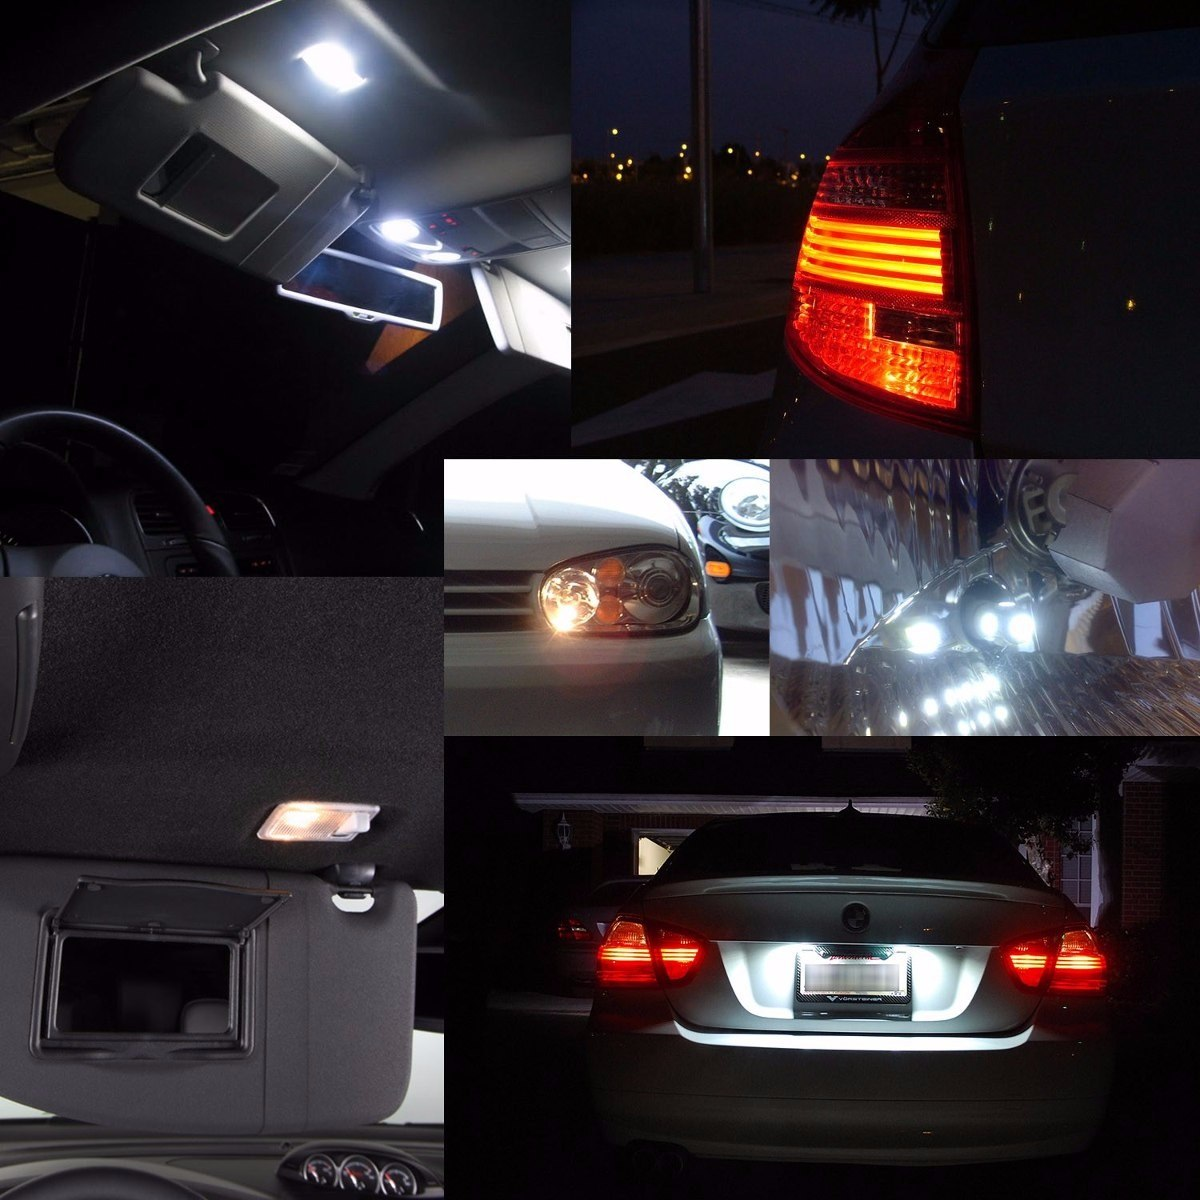 Kit de luces bora vw led interior cuartos portaplacas mk5 - Habitaciones con luces ...